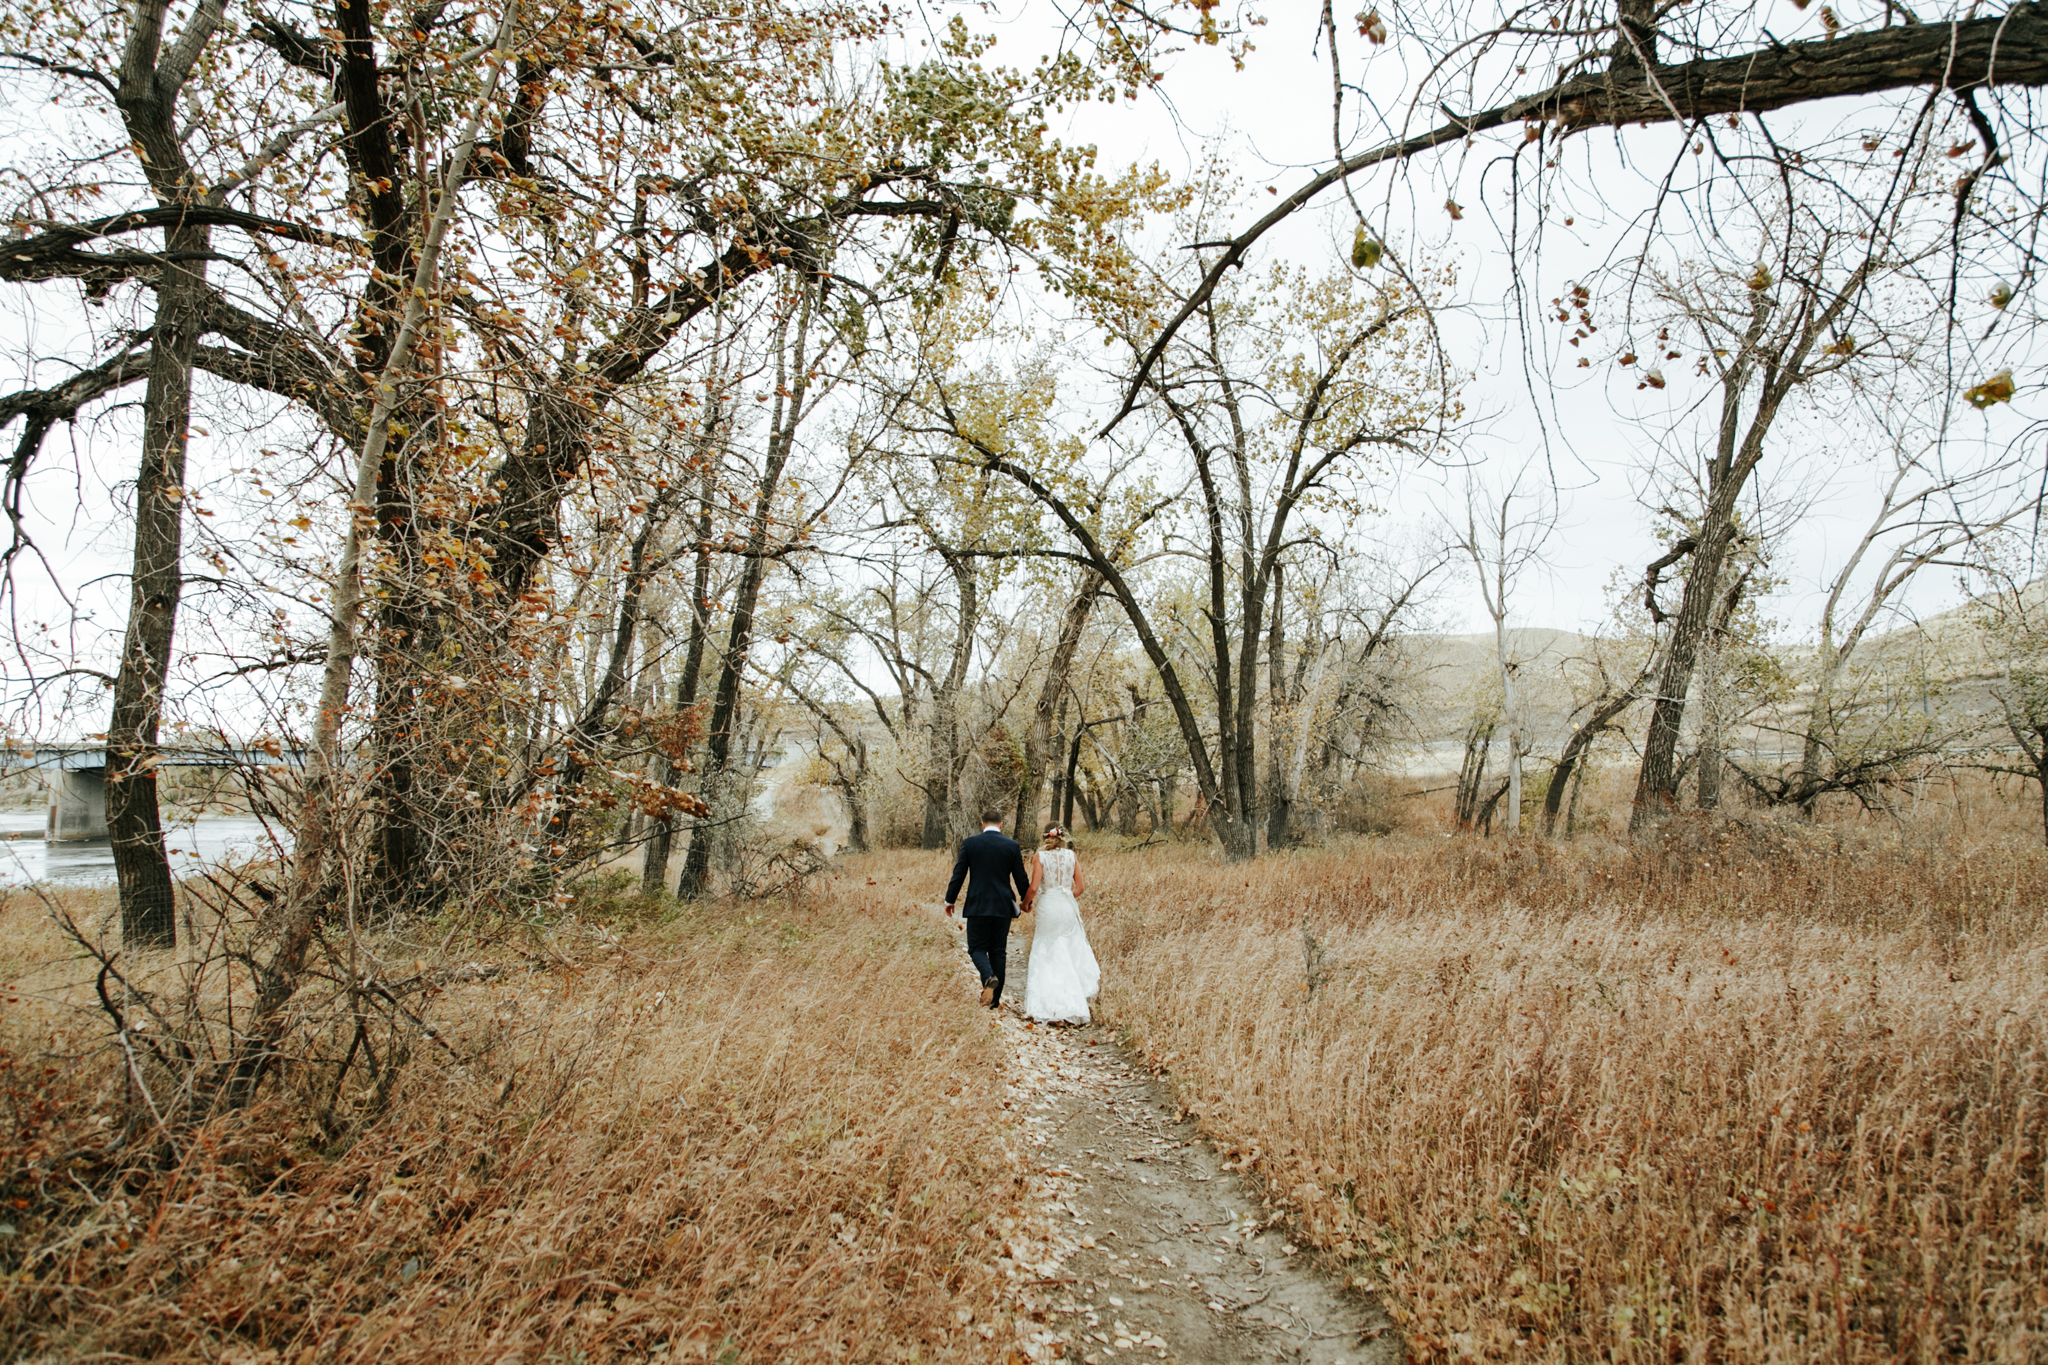 lethbridge-photographer-love-and-be-loved-photography-designed-to-dwell-wedding-katie-kelly-photo-image-picture-47.jpg